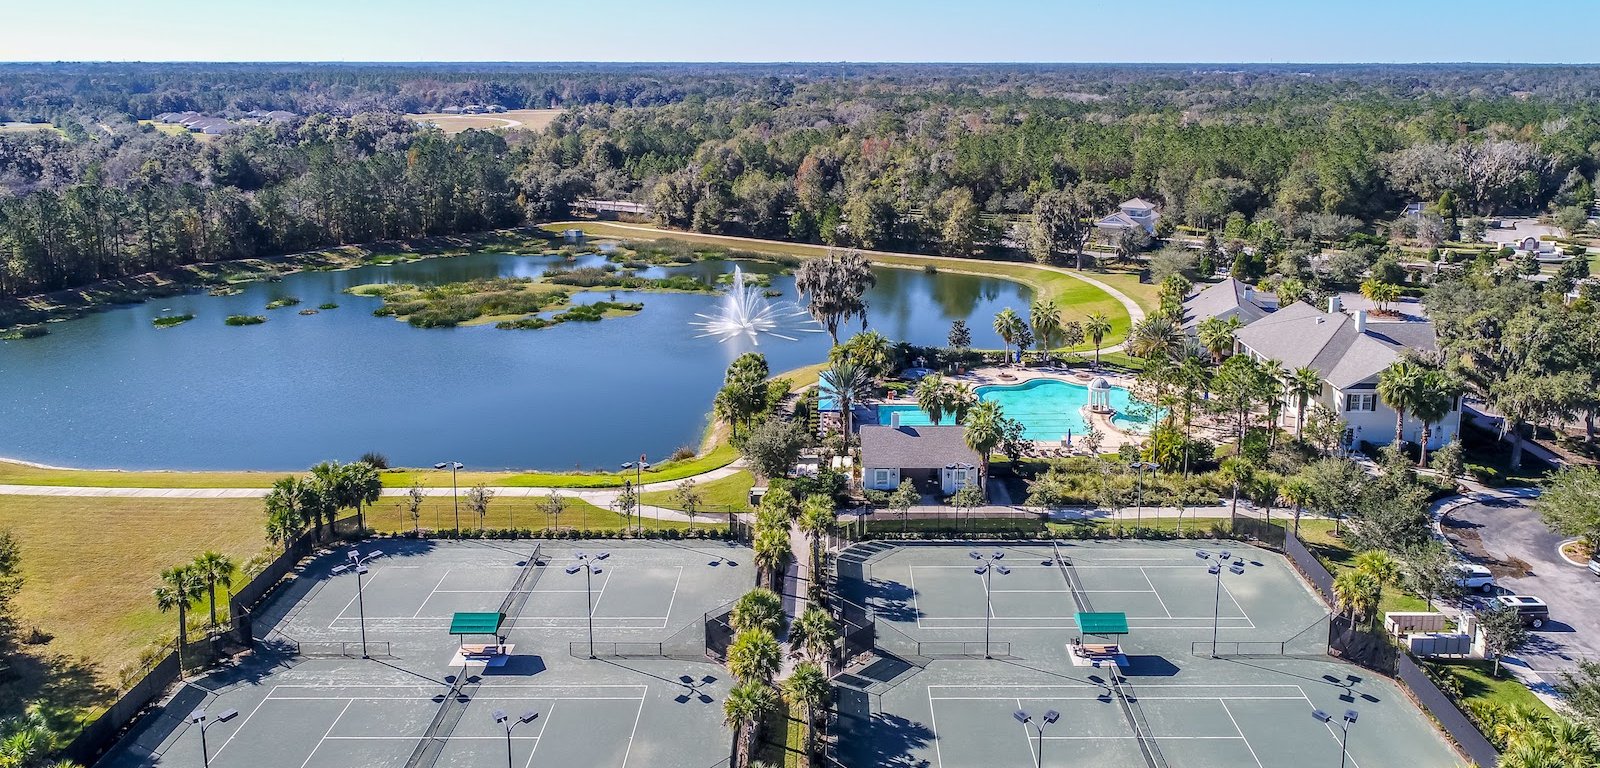 Southern Hills - Golf community outdoor tennis courts